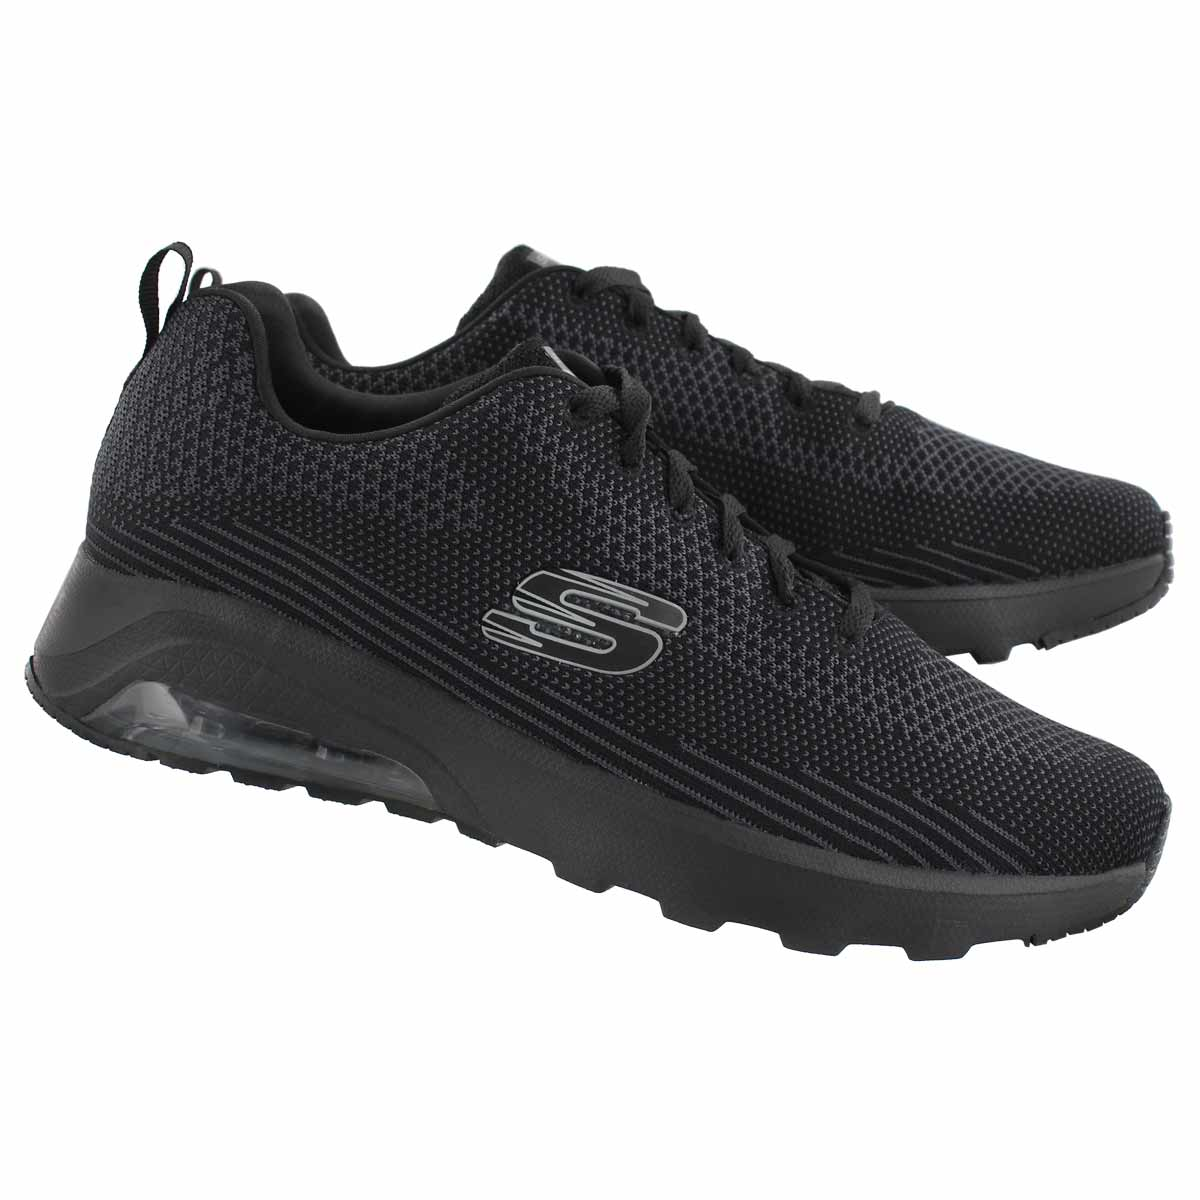 Mns Skech-Air Extreme blk lace up snkr